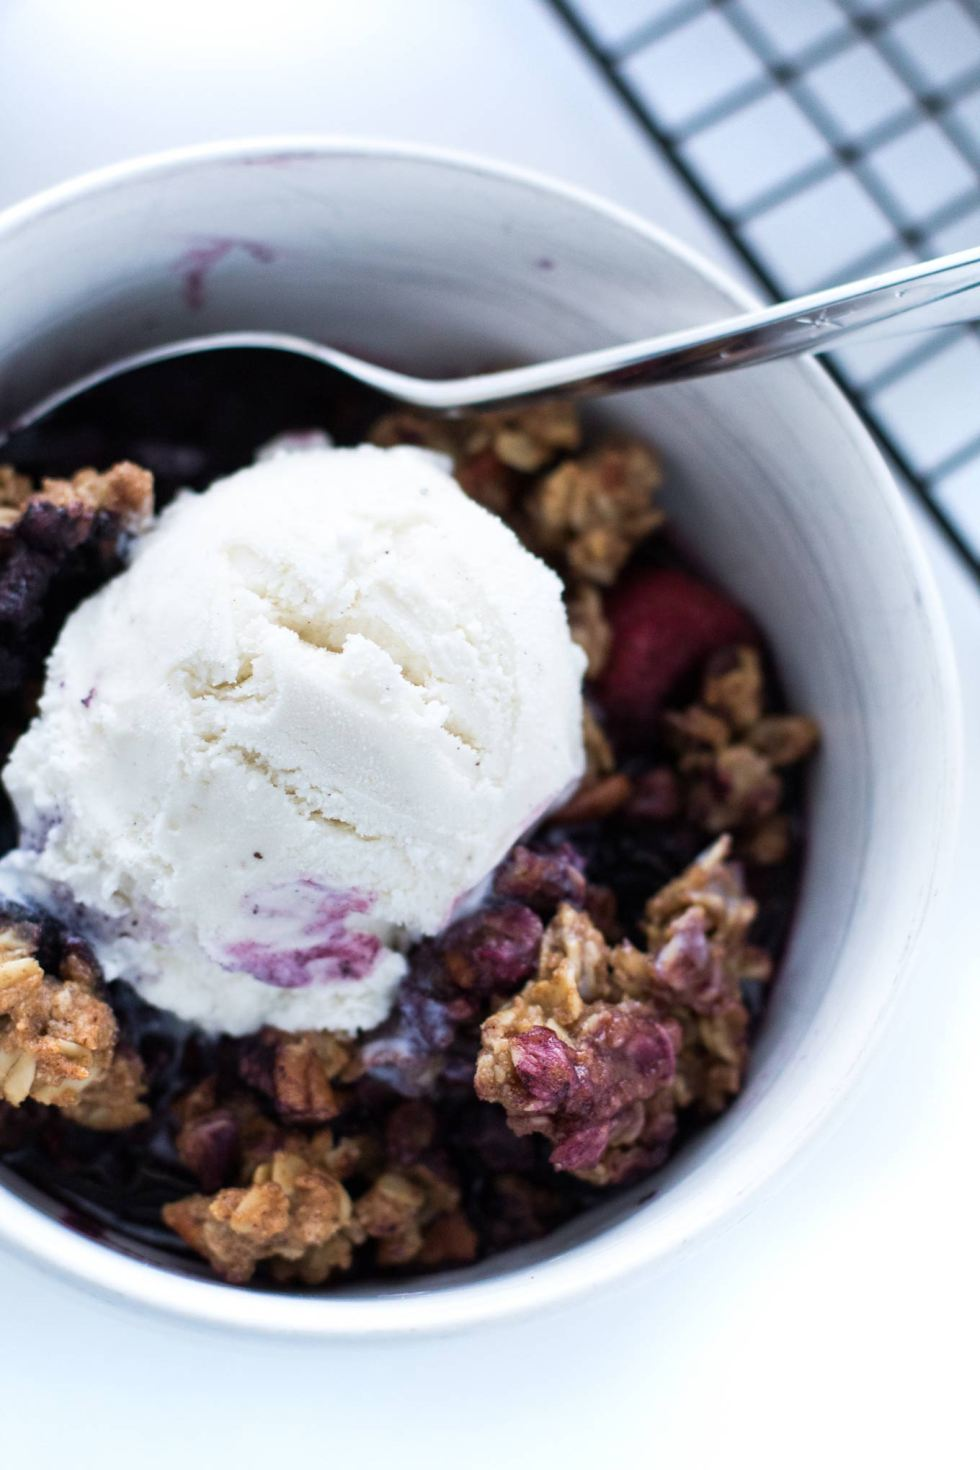 Overhead shot of frozen berry crumble with a scoop of vanilla ice cream melting into it.